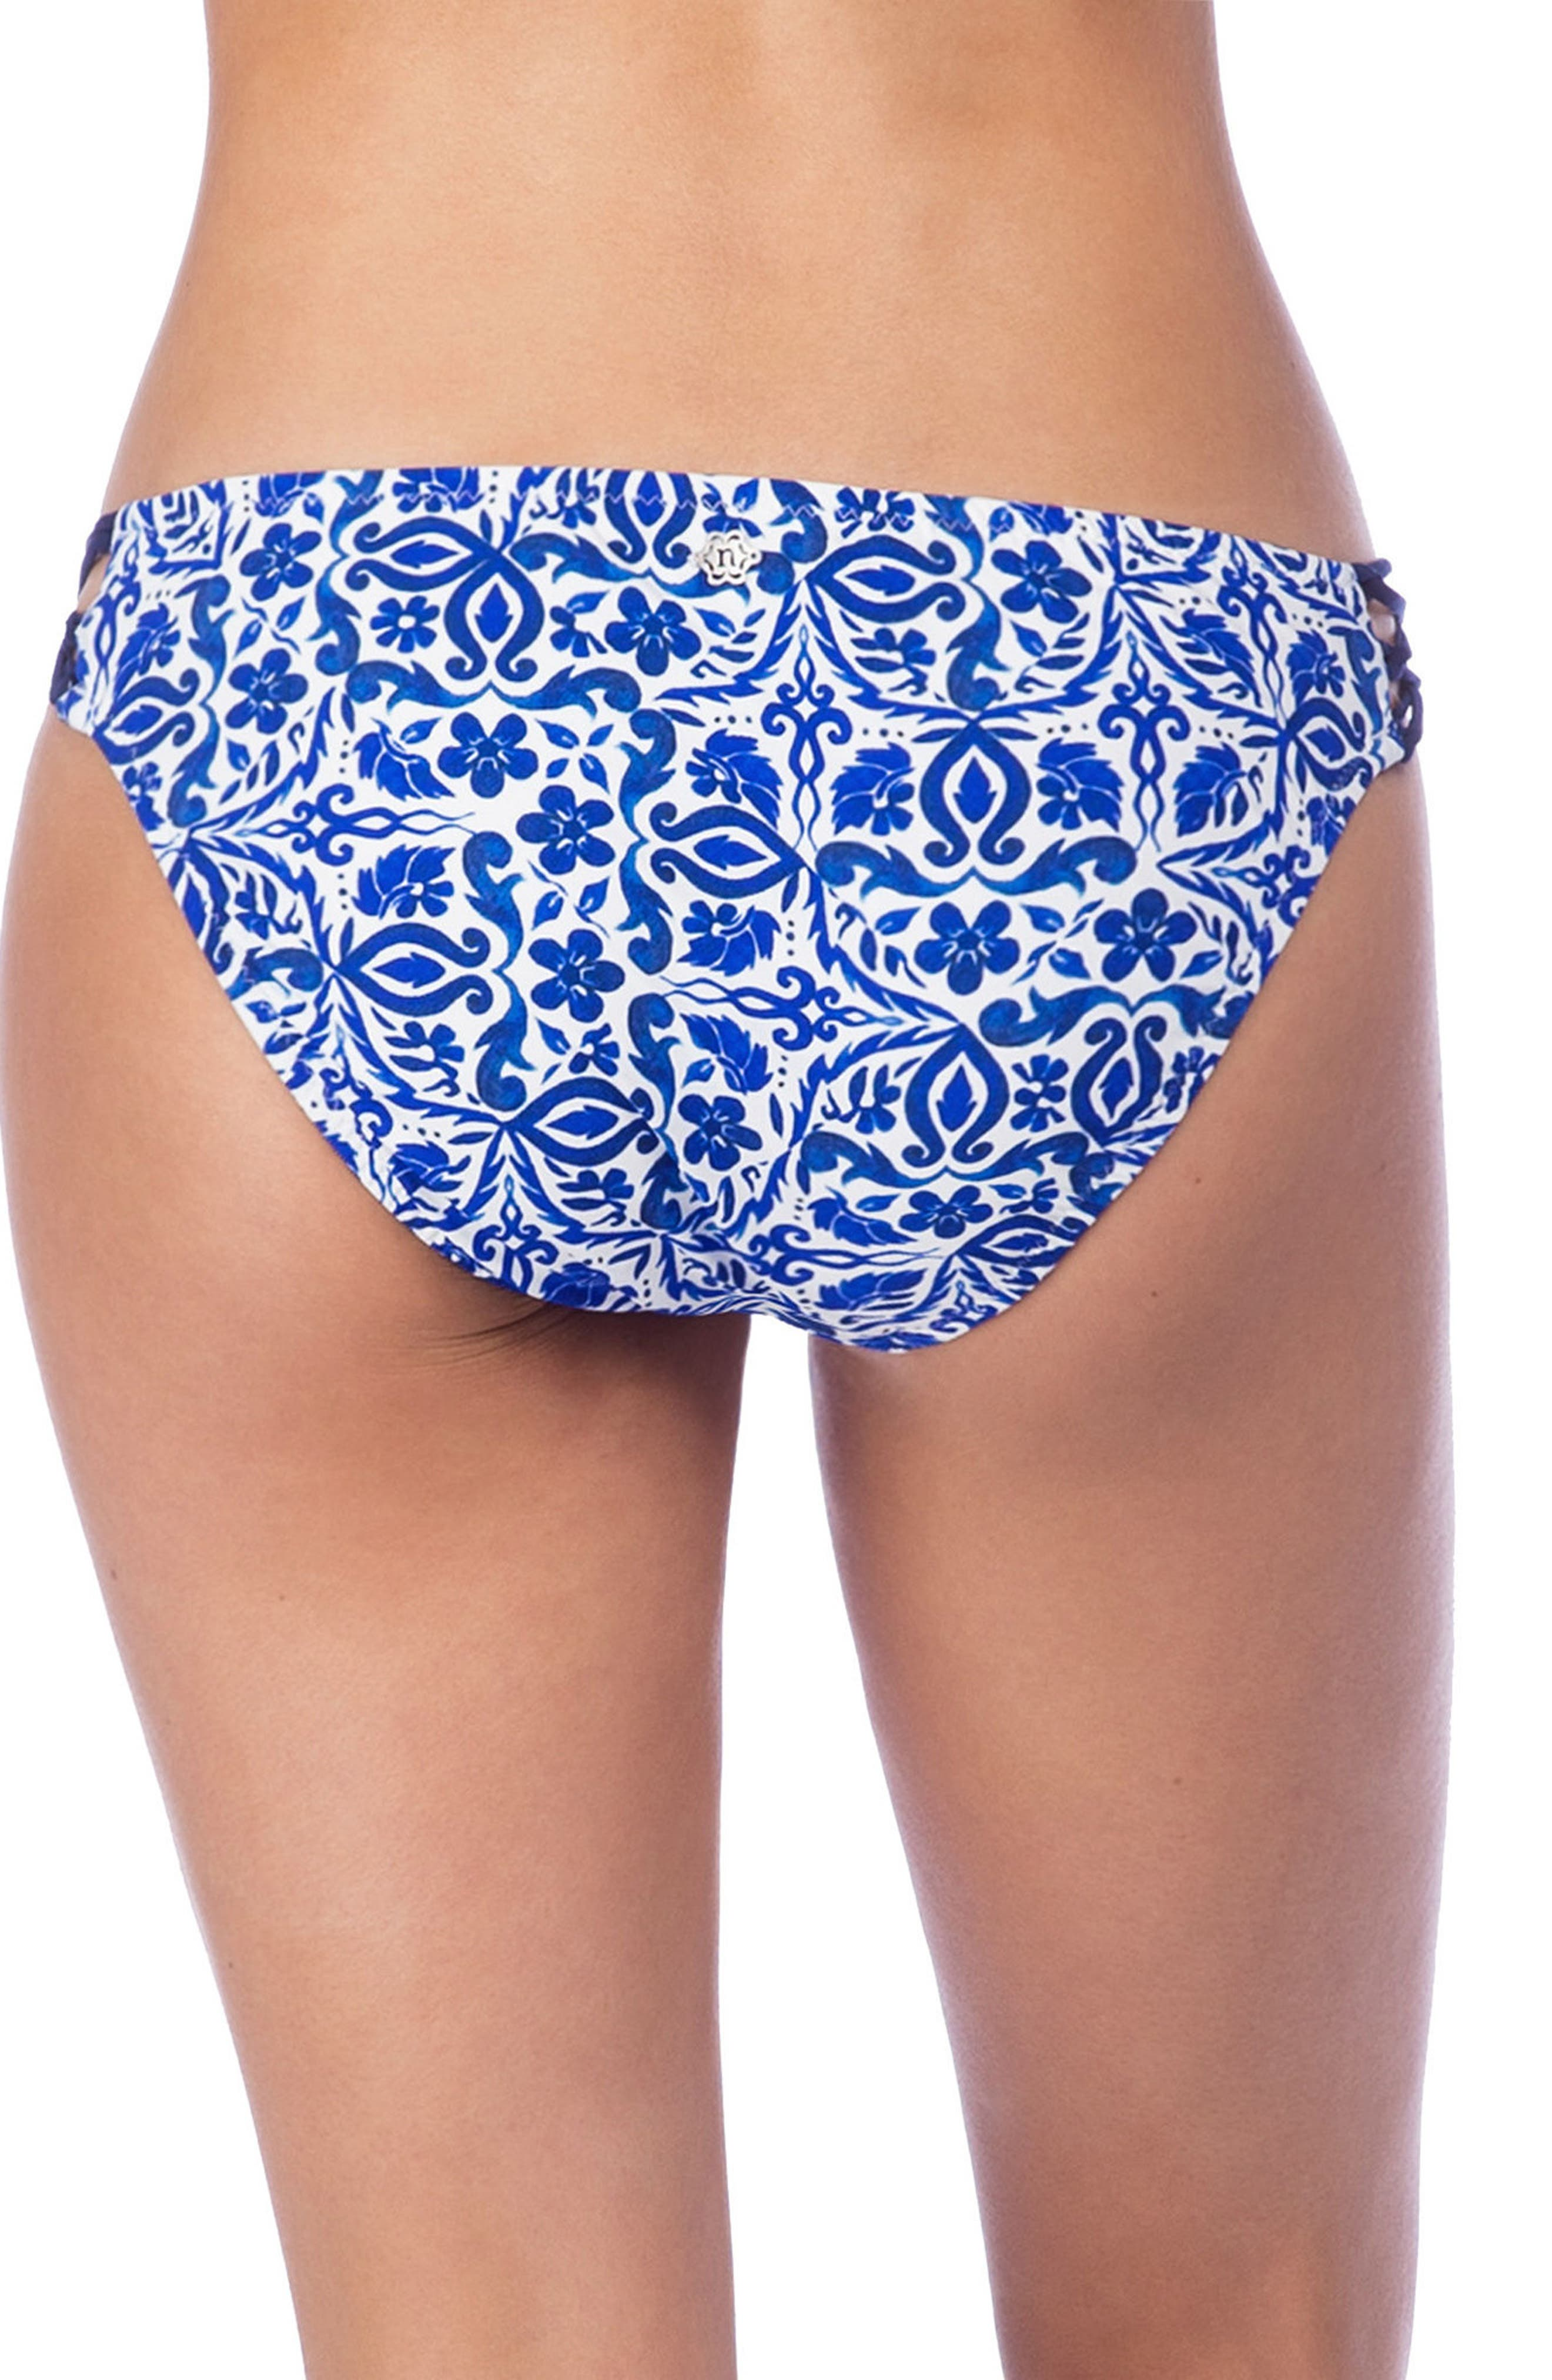 Talavera Charmer Hipster Bikini Bottoms,                             Alternate thumbnail 2, color,                             Azure